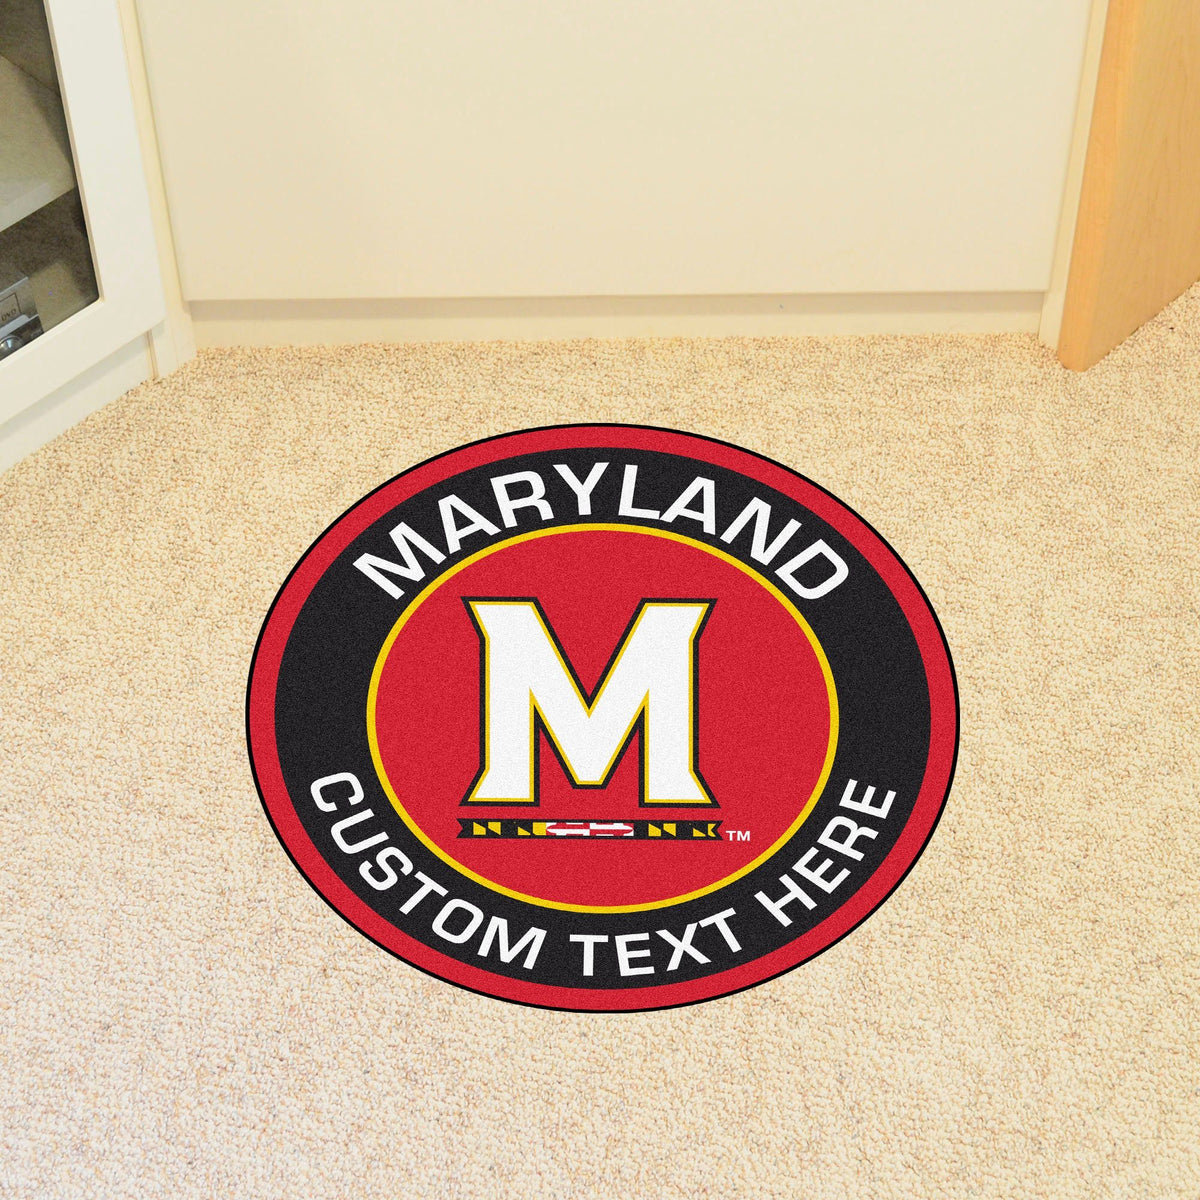 Collegiate Personalized Roundel Mat Personalized Roundel Mat Fan Mats University of Maryland